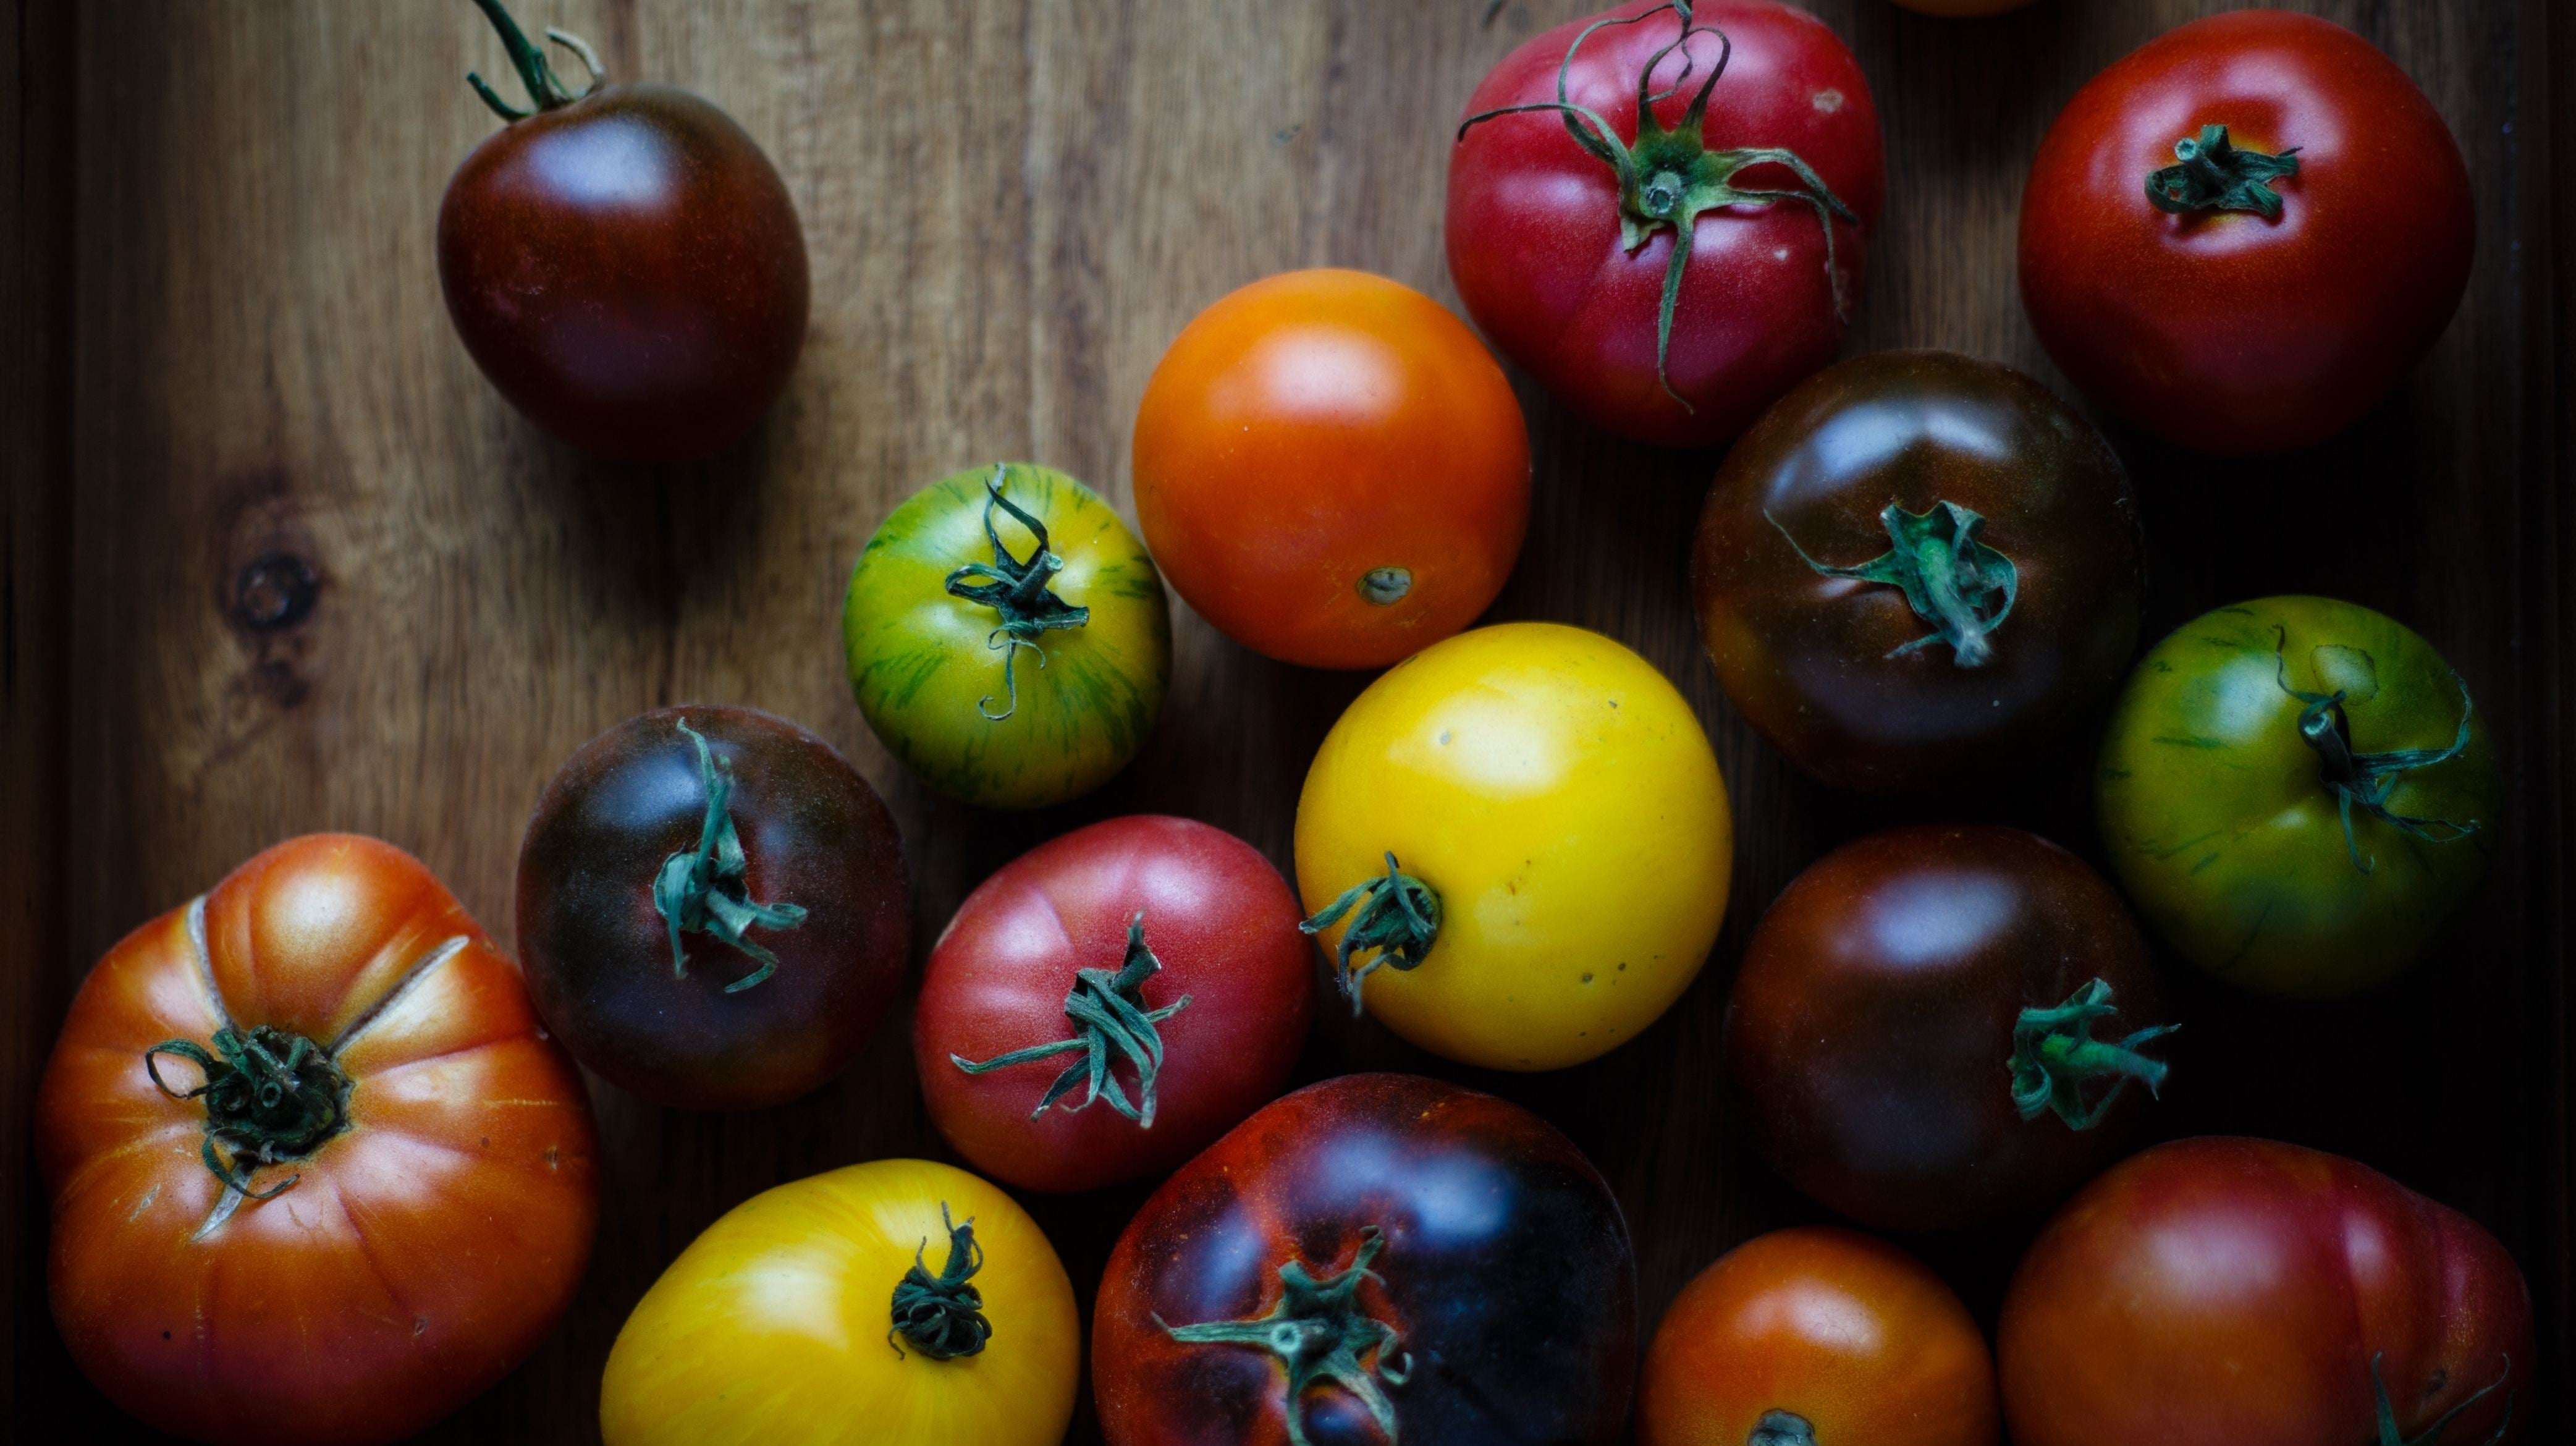 Seeding Tomatoes Is A Waste Of Time (And Flavour)